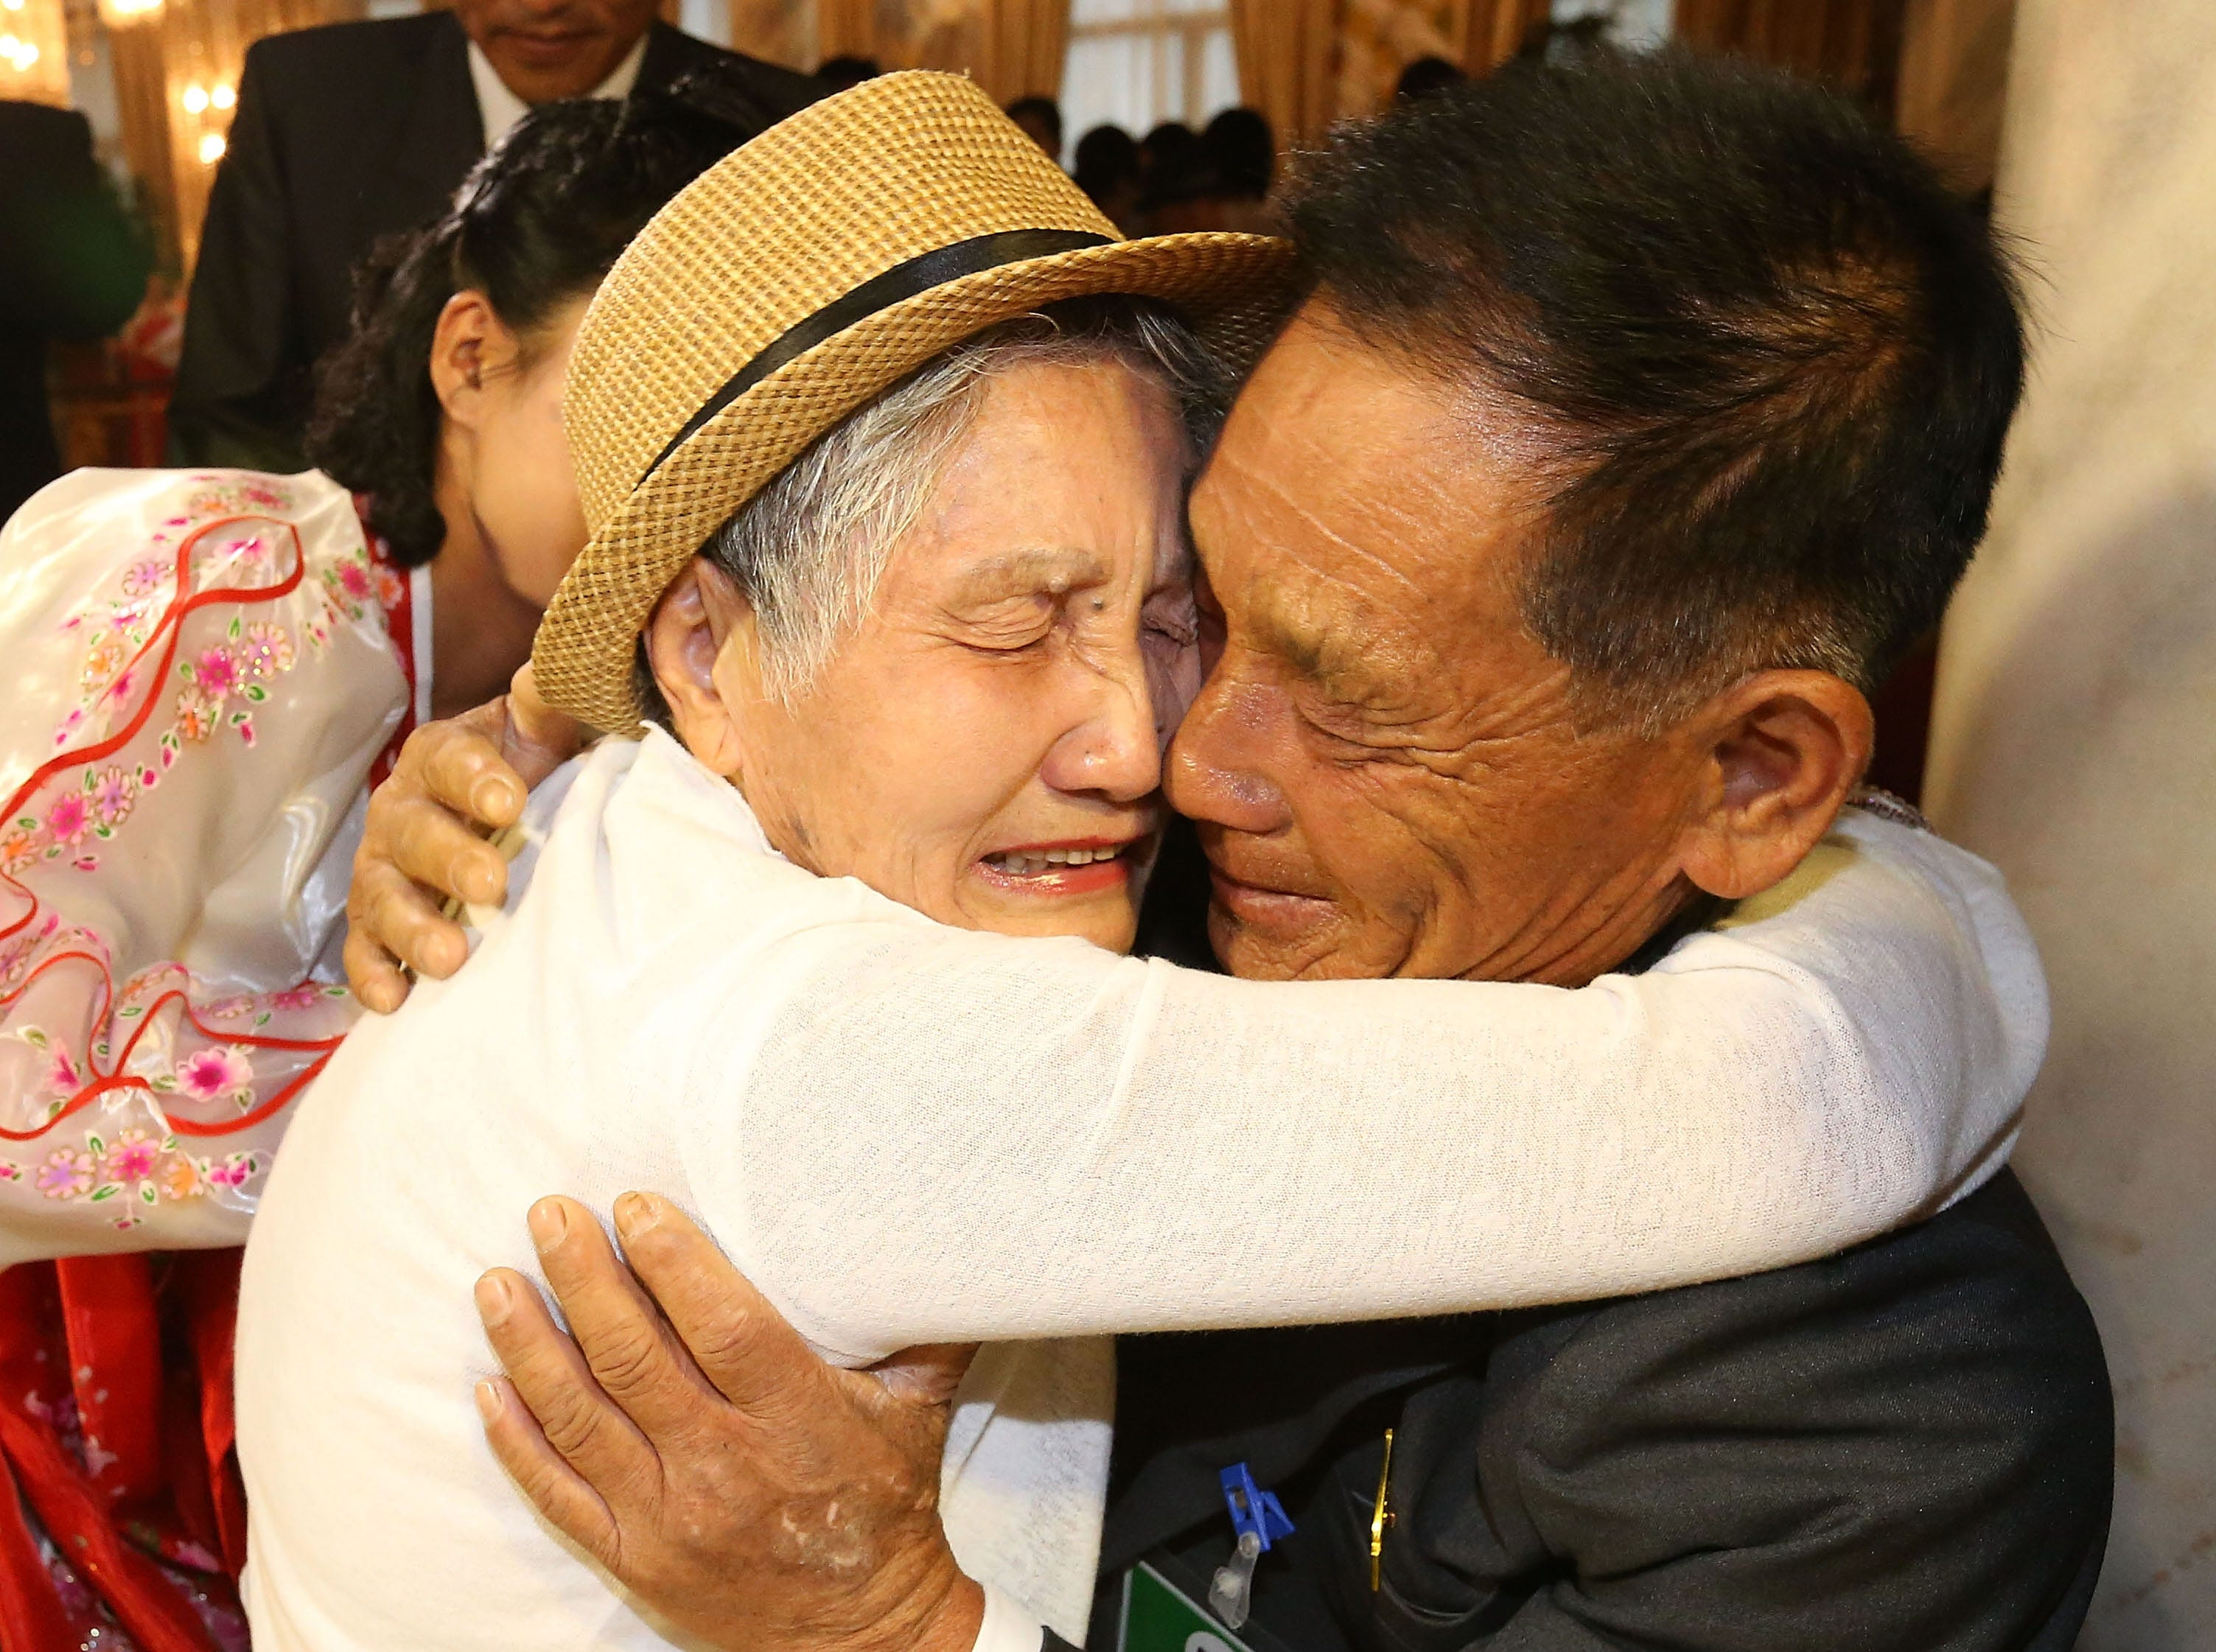 Aug. 20, 2018: South Korean Lee Geum-Sum, 92, meets with her North Korean son Lee Sung-Chul, 71, during a separated family reunion meeting at the Mount Kumgang resort in Mount Kumgang, North Korea. Almost a hundred South Koreans crossed the heavily armed border to meet their separated families for the first time since the 1950-53 Korean War, during a family reunion at North Korea. A total of 88 people from North Korea received a chance to meet their families in the South during the six-day event at Mount Kumgang, north of the border between North and South Korea.